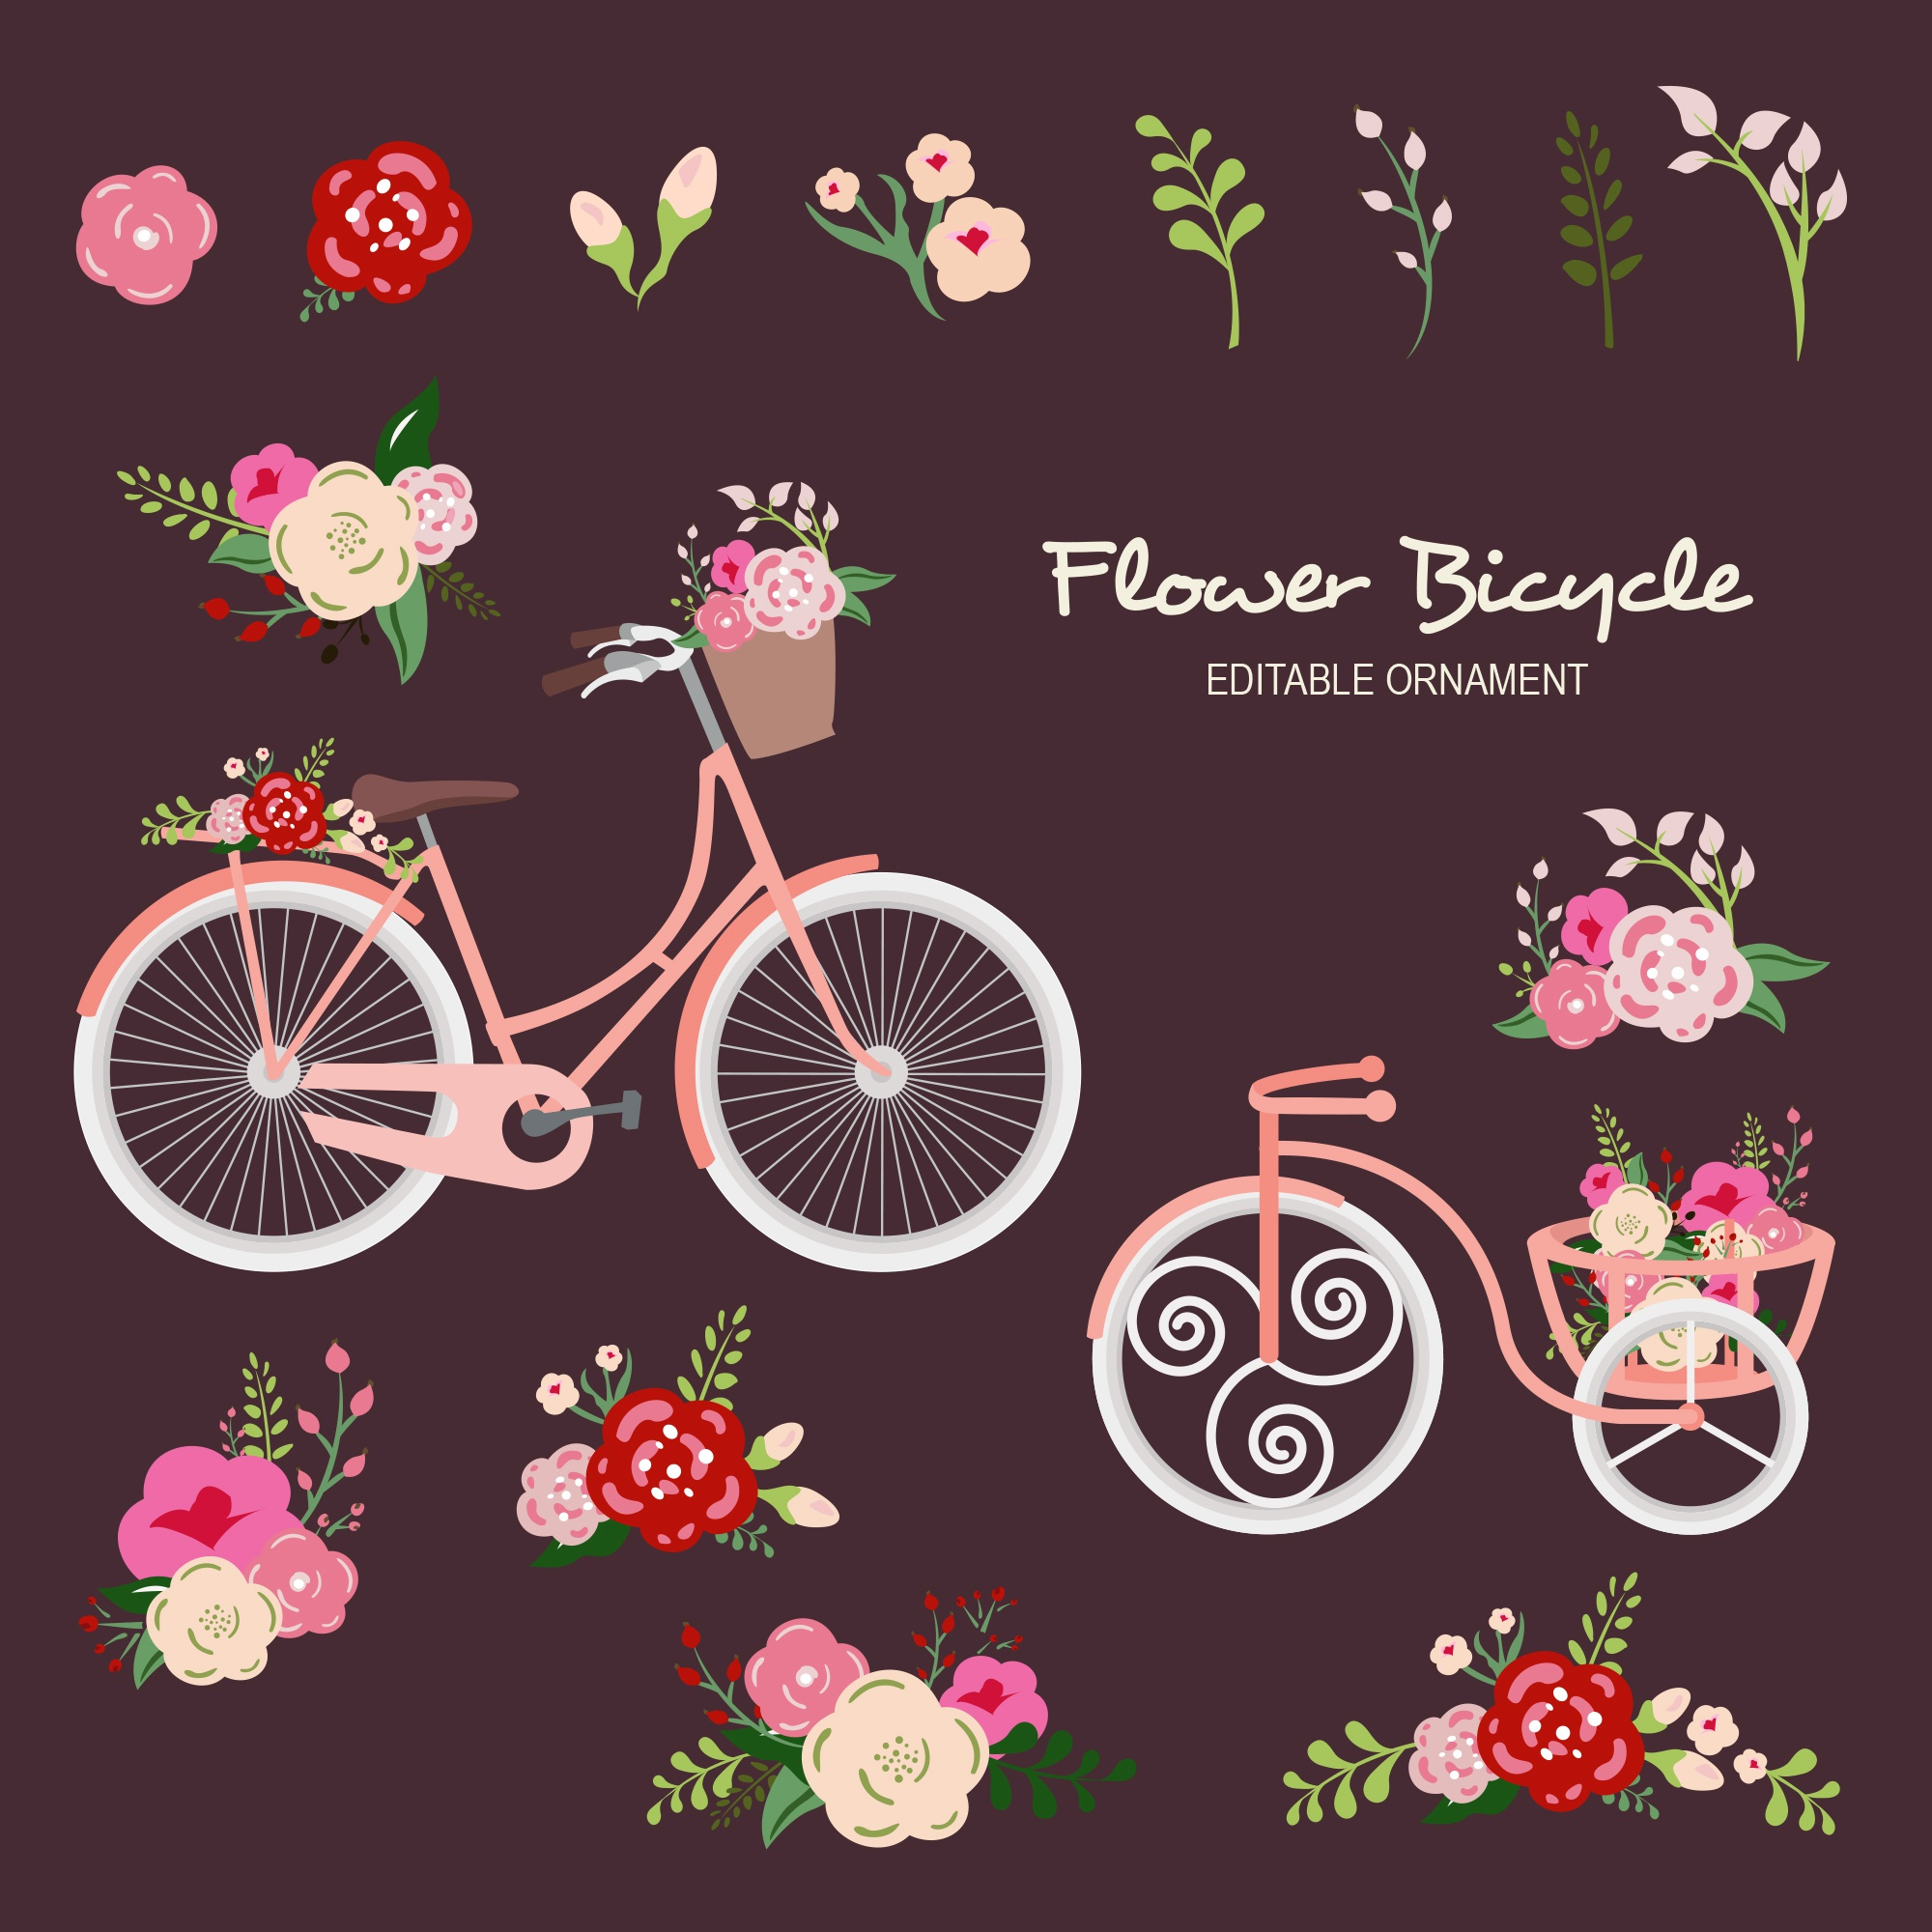 Flower Bicycle Editable Ornament